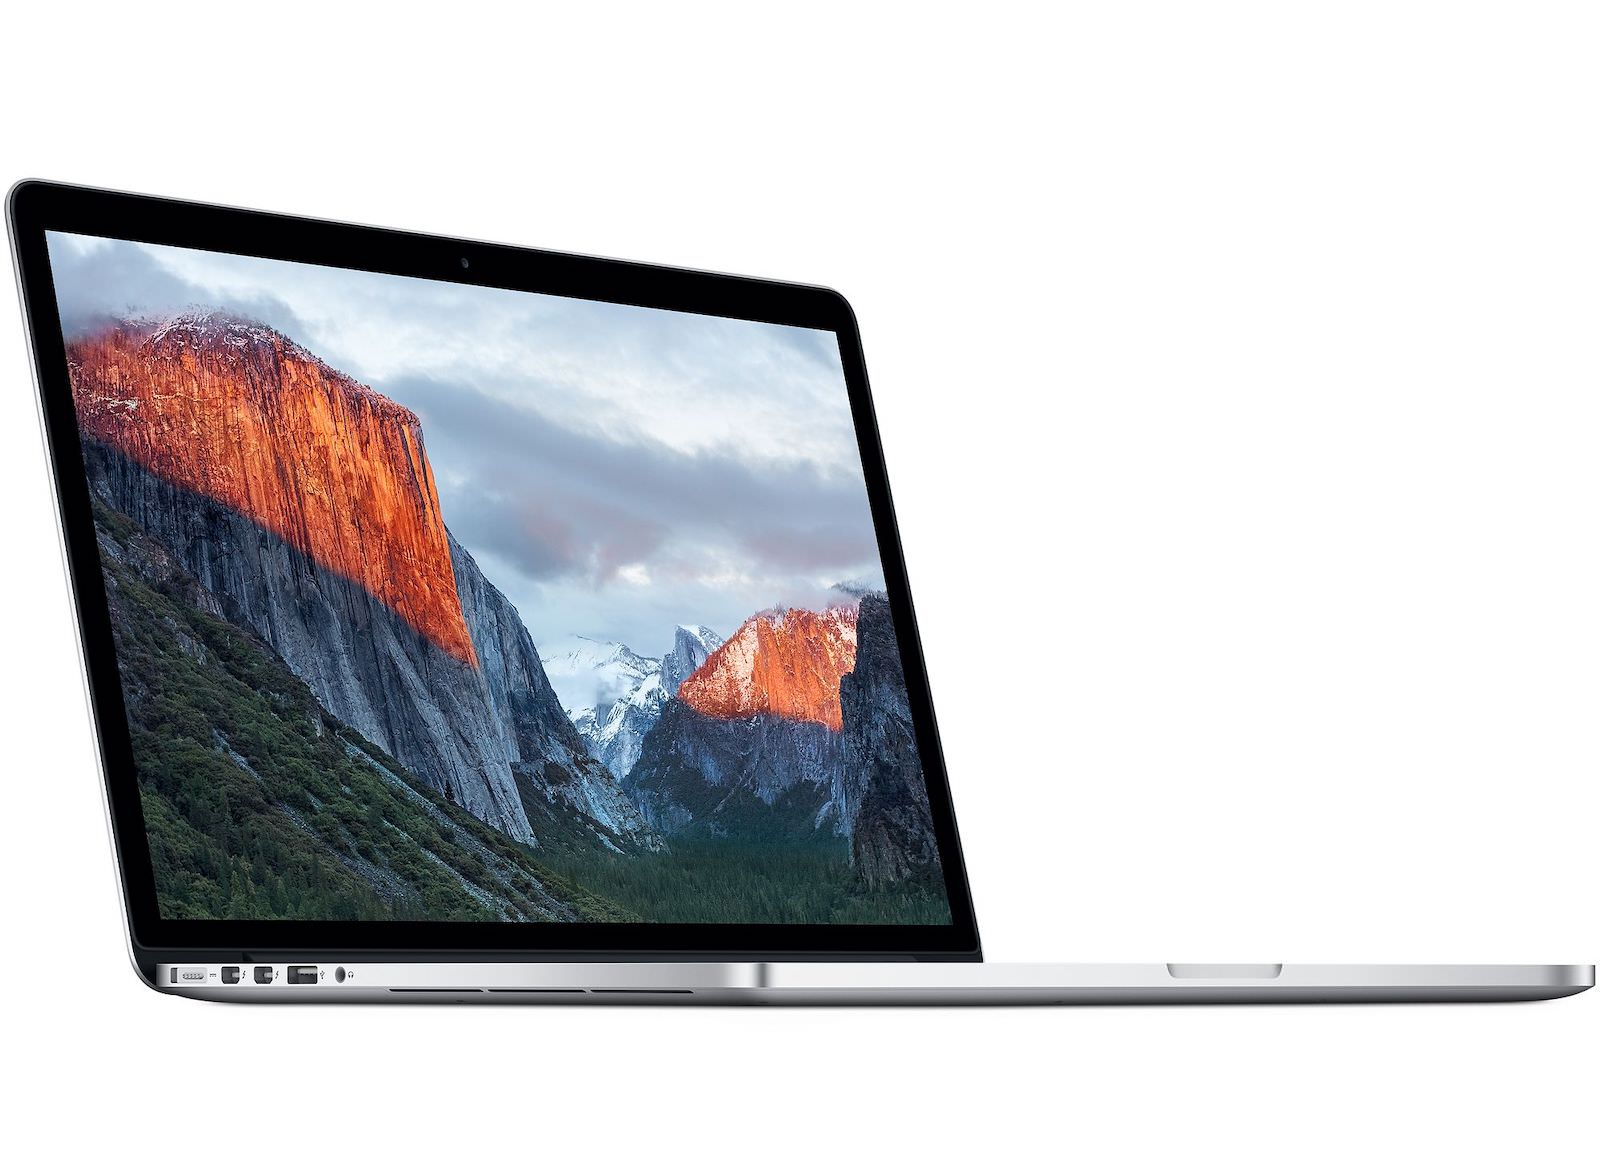 Clearance 2013 macbookpro 15 gallery AV2